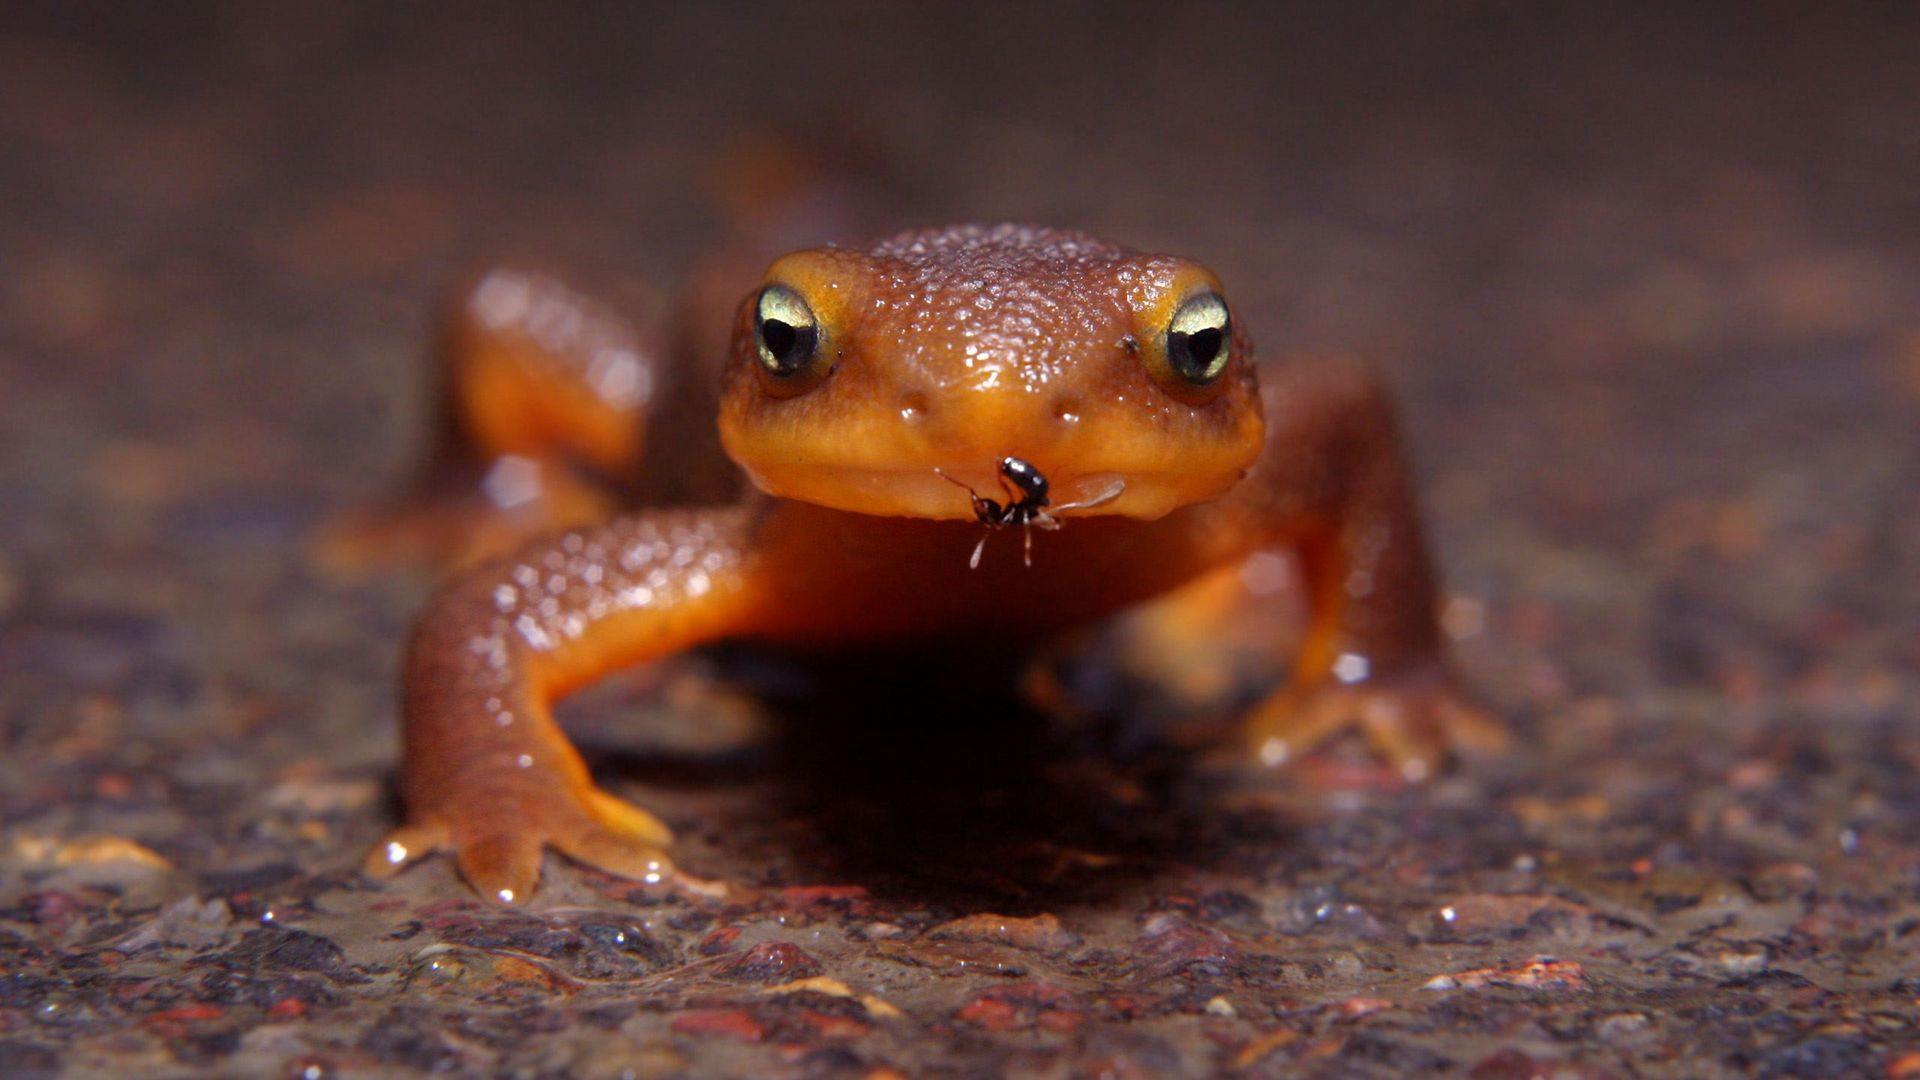 amphibians newt insect insects HD Wallpaper